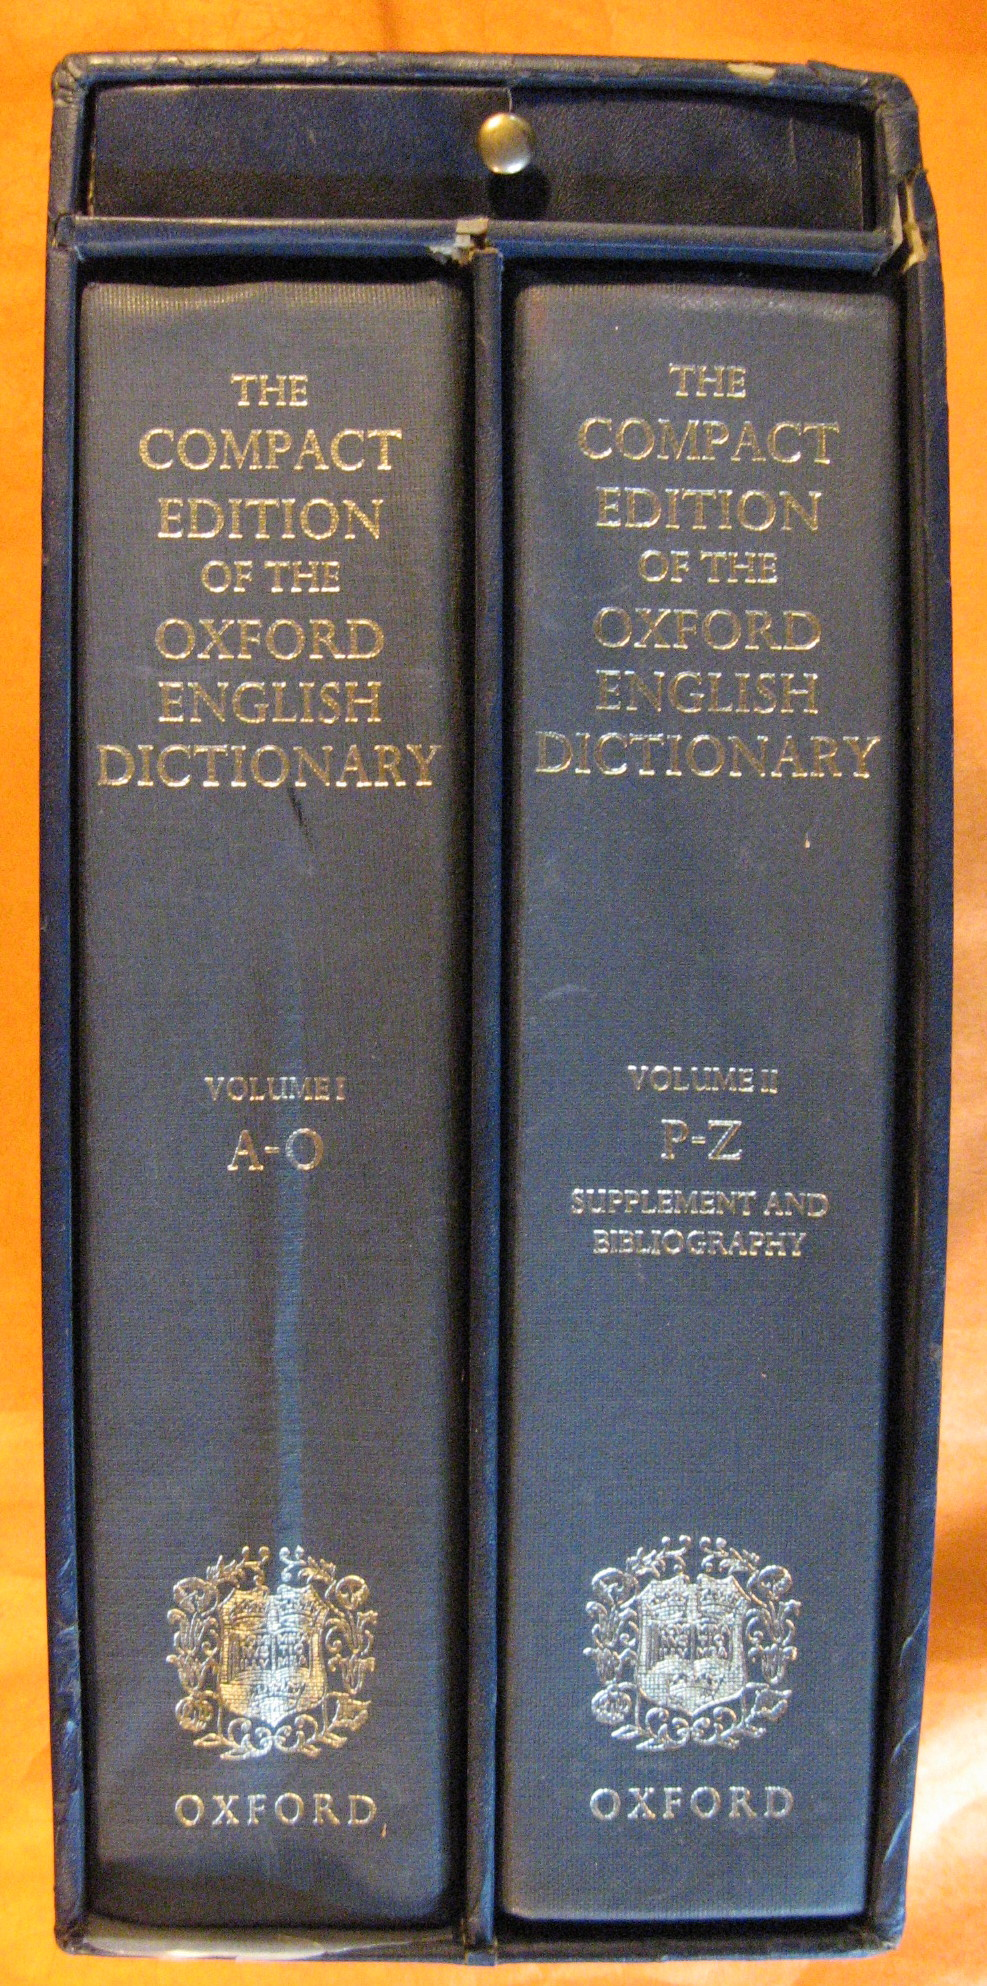 The Compact Edition of the Oxford English Dictionary: Complete Text Reproduced Micrographically (2 Volumes in a Slipcase, with Magnifying Glass)